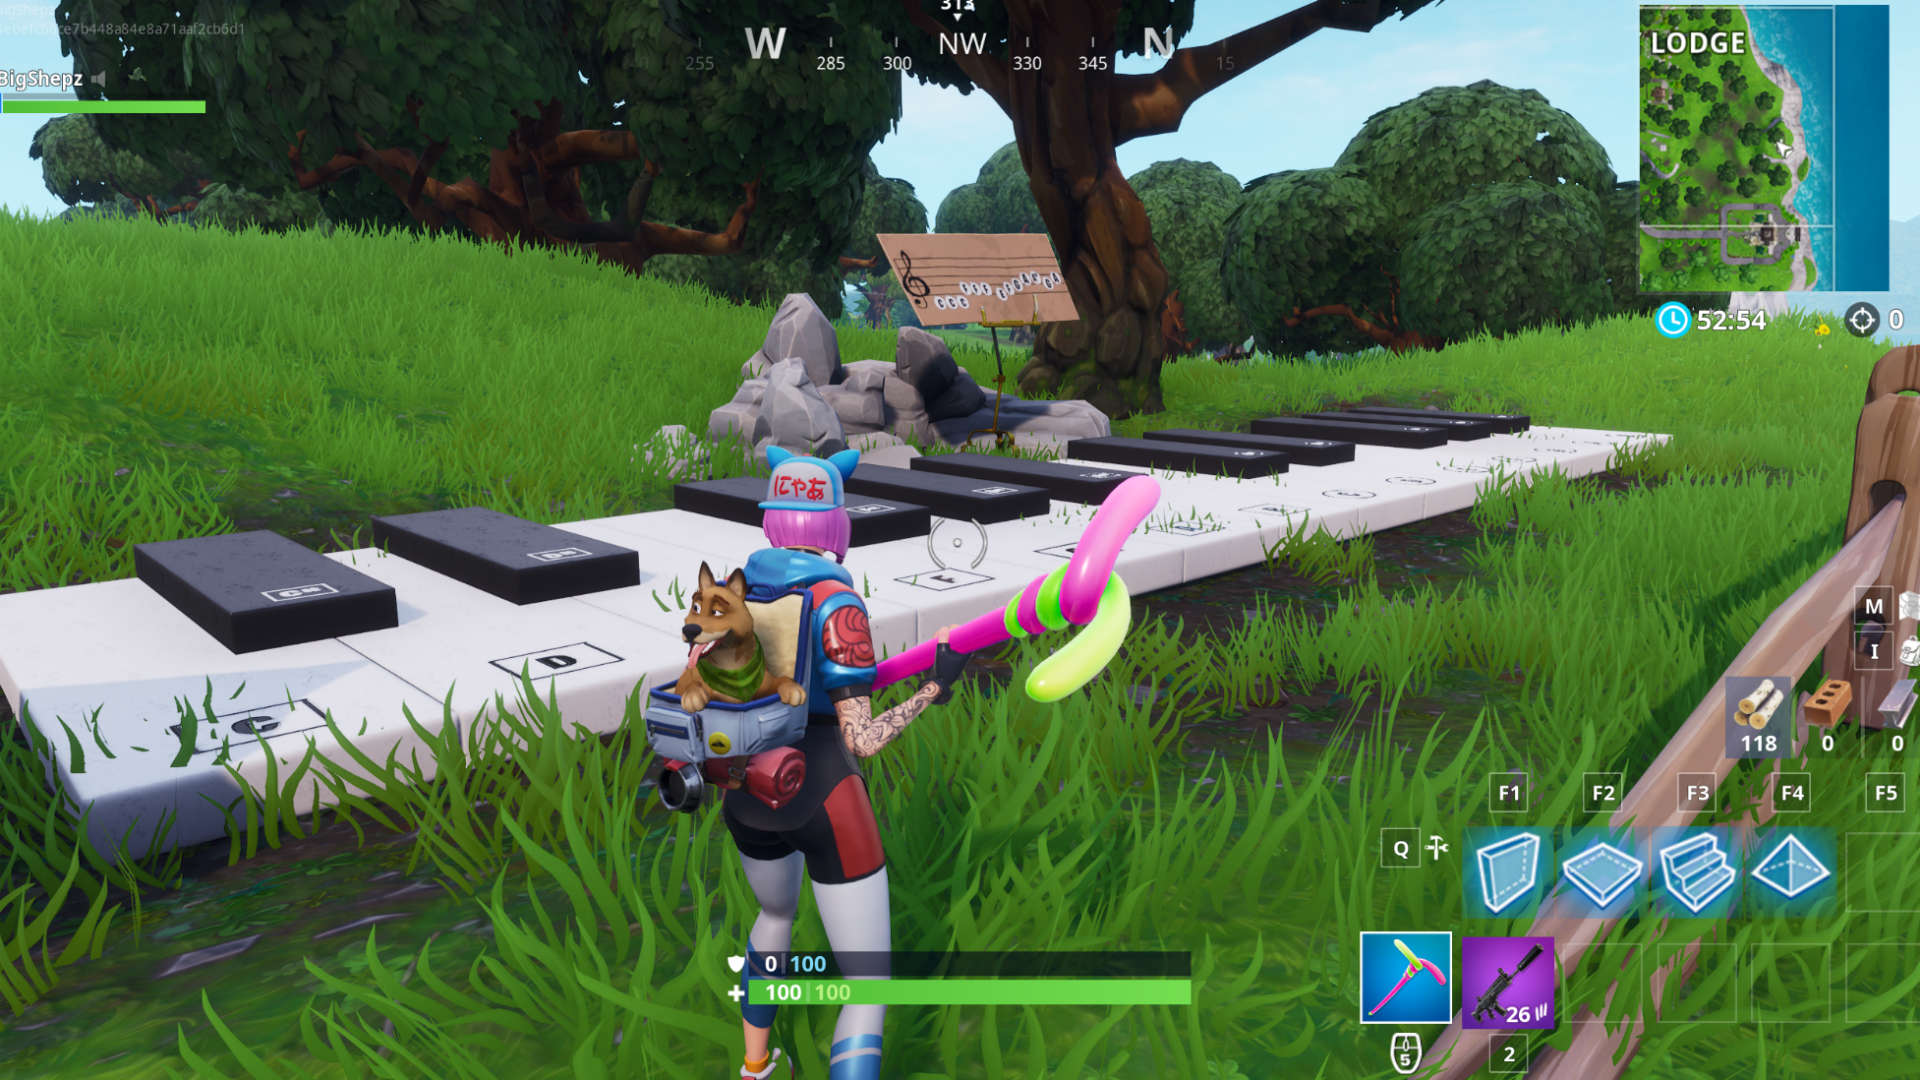 Where is the piano in fortnite lonely lodge